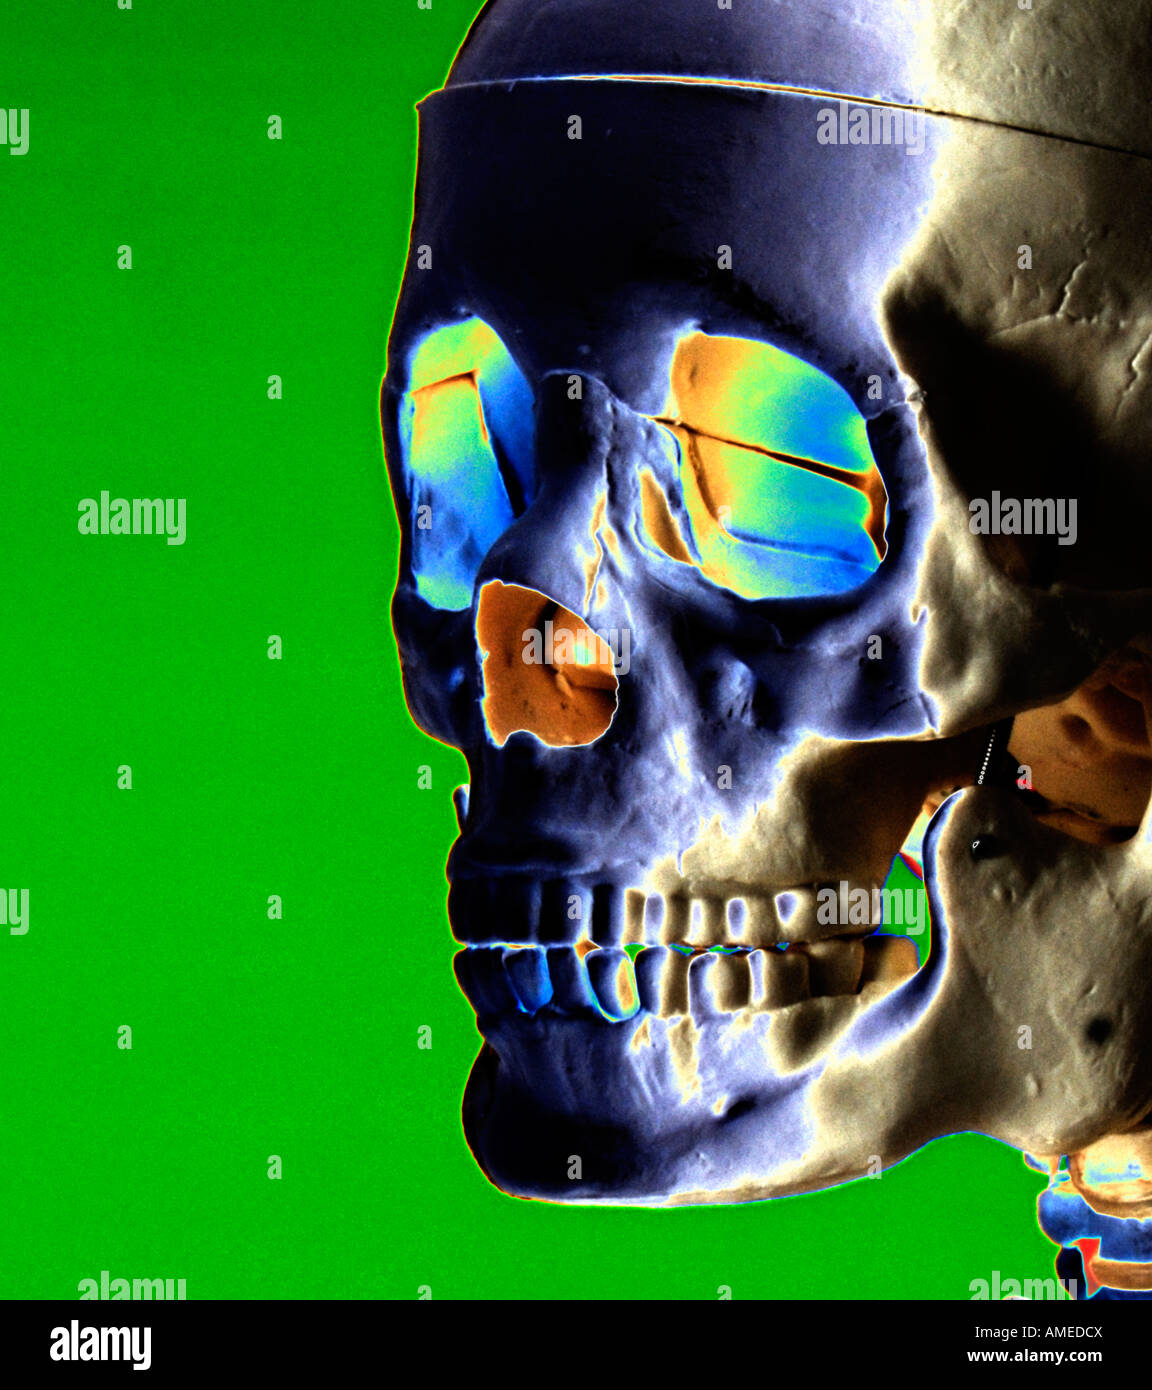 x-ray of human skull with color code - Stock Image